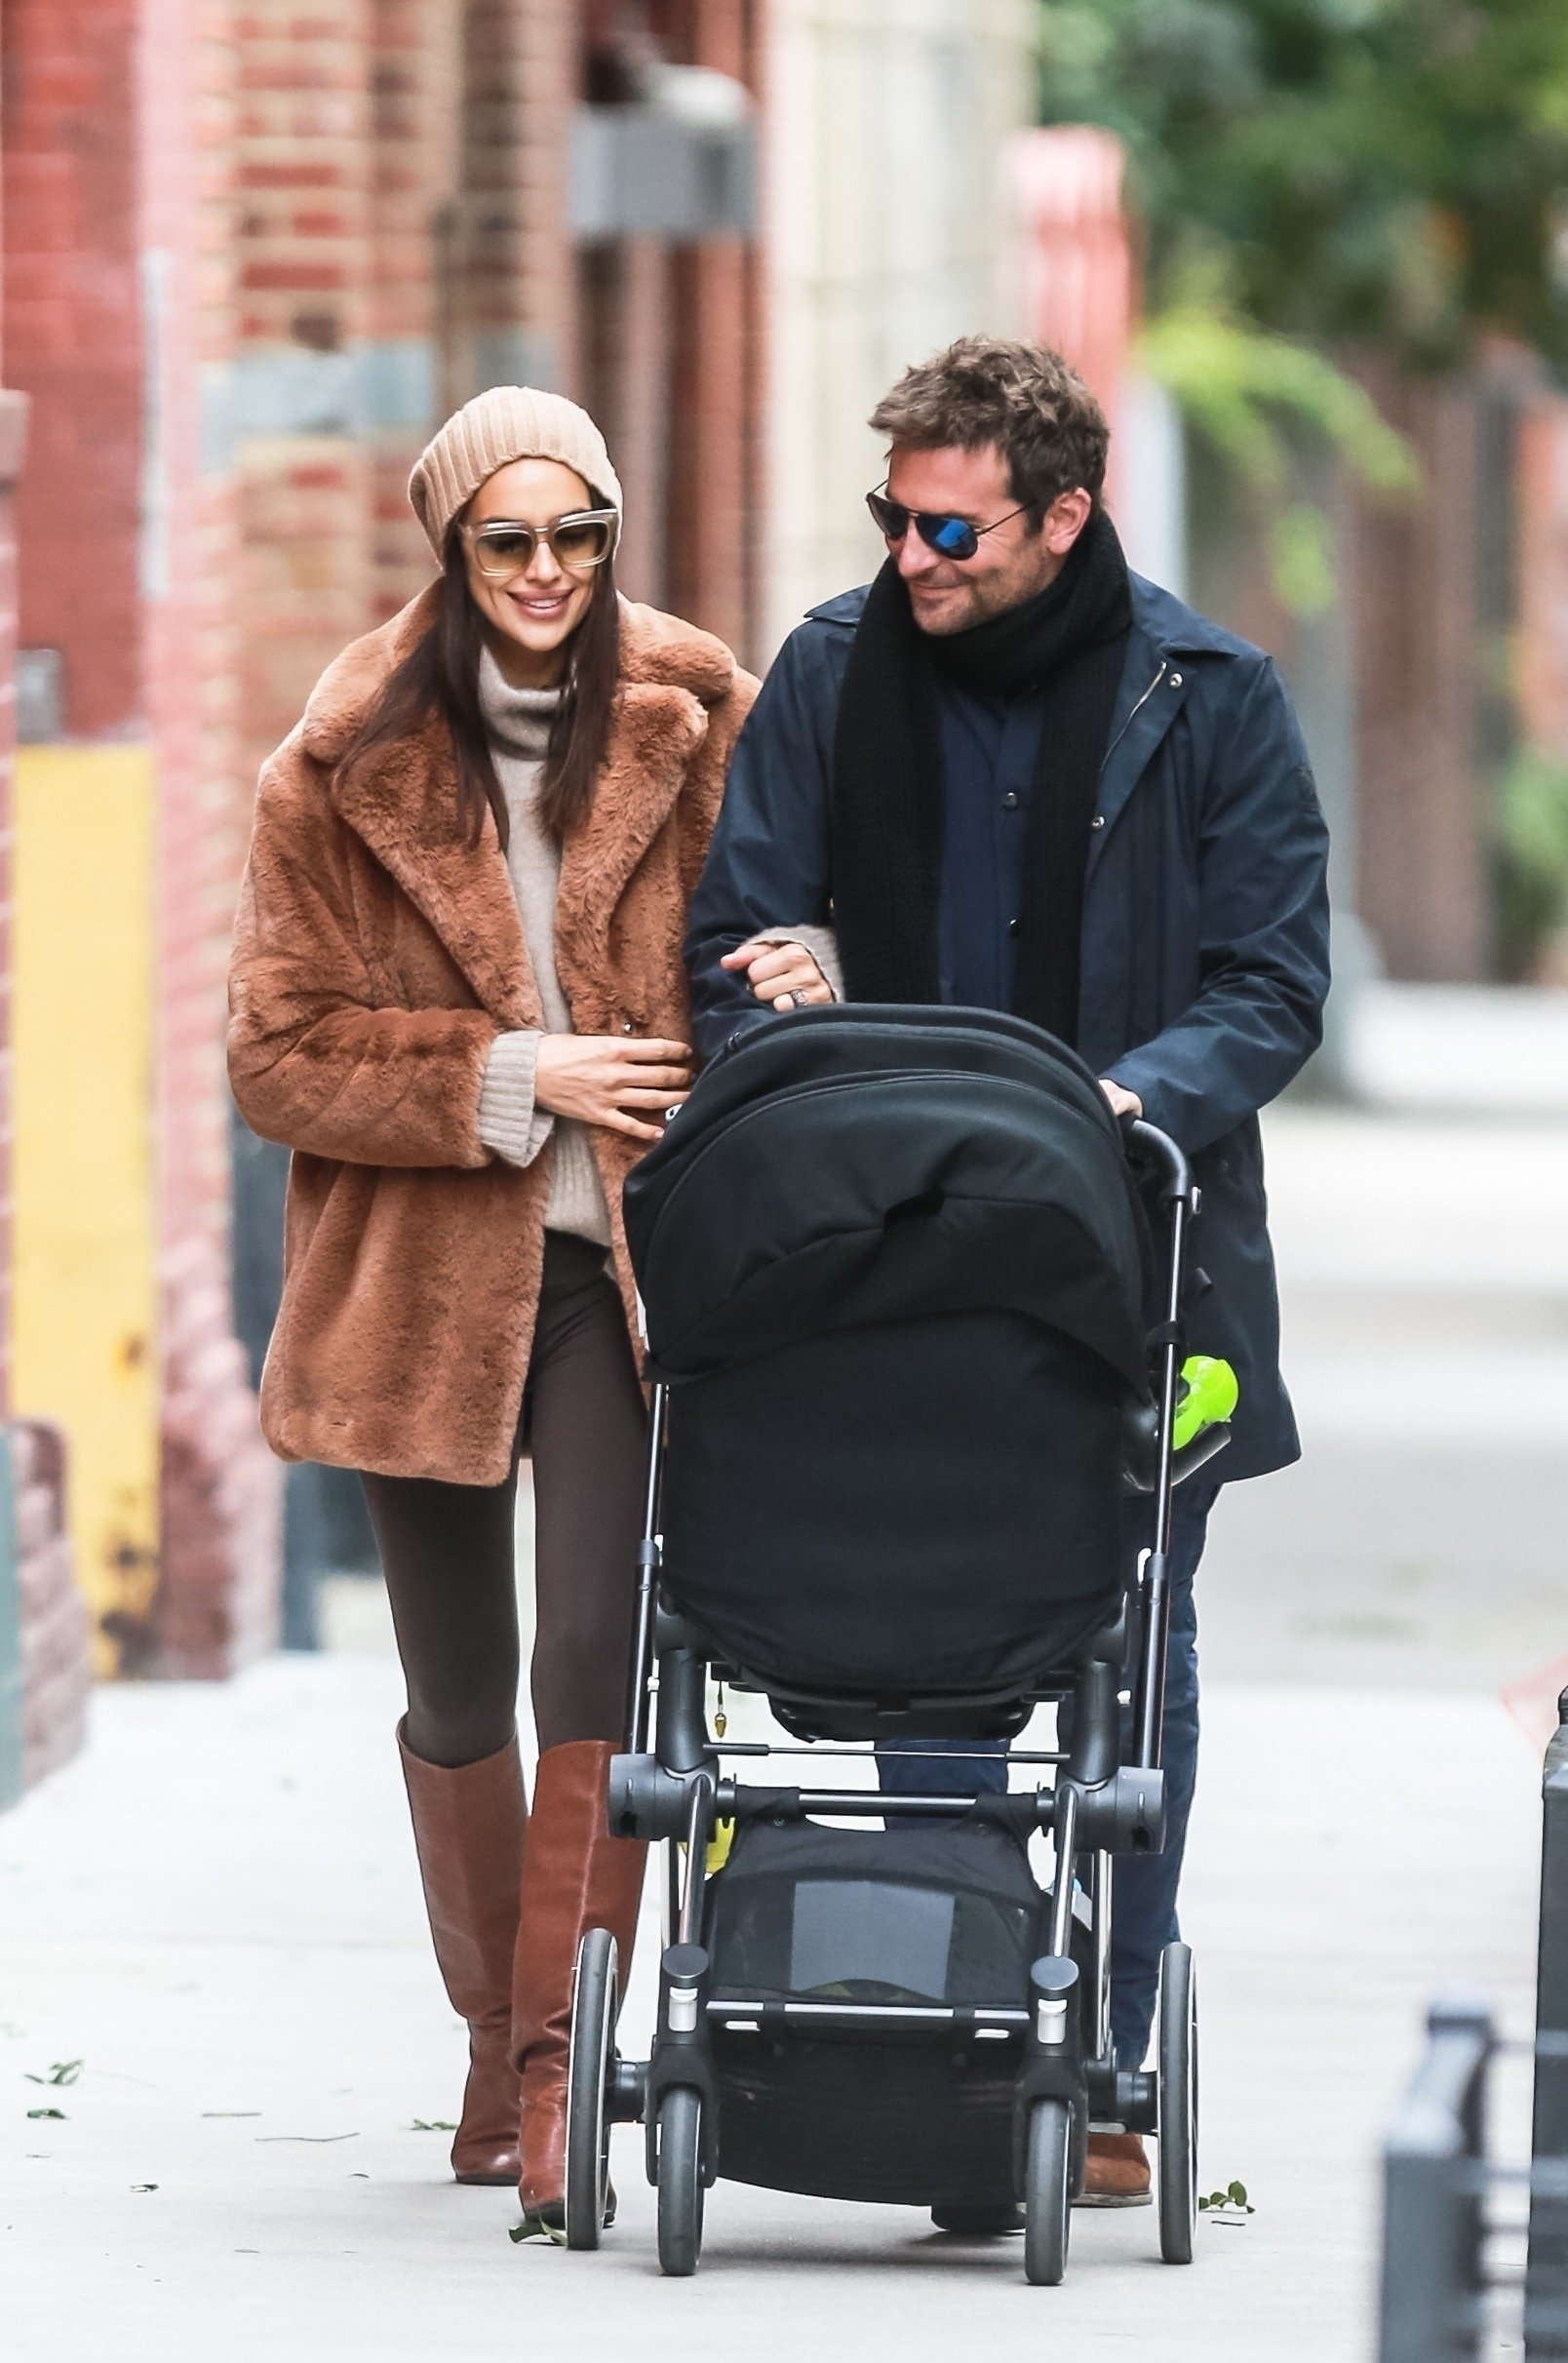 New York, NY  - Bradley Cooper and Irina Shayk enjoying their Sunday with their daughter Lea at a playground. The family look happy as they enjoy their brisk NYC morning together.  Pictured: Bradley Cooper, Irina Shayk    *UK Clients - Pictures Containing Children Please Pixelate Face Prior To Publication*, Image: 392016501, License: Rights-managed, Restrictions: , Model Release: no, Credit line: Profimedia, AKM-GSI